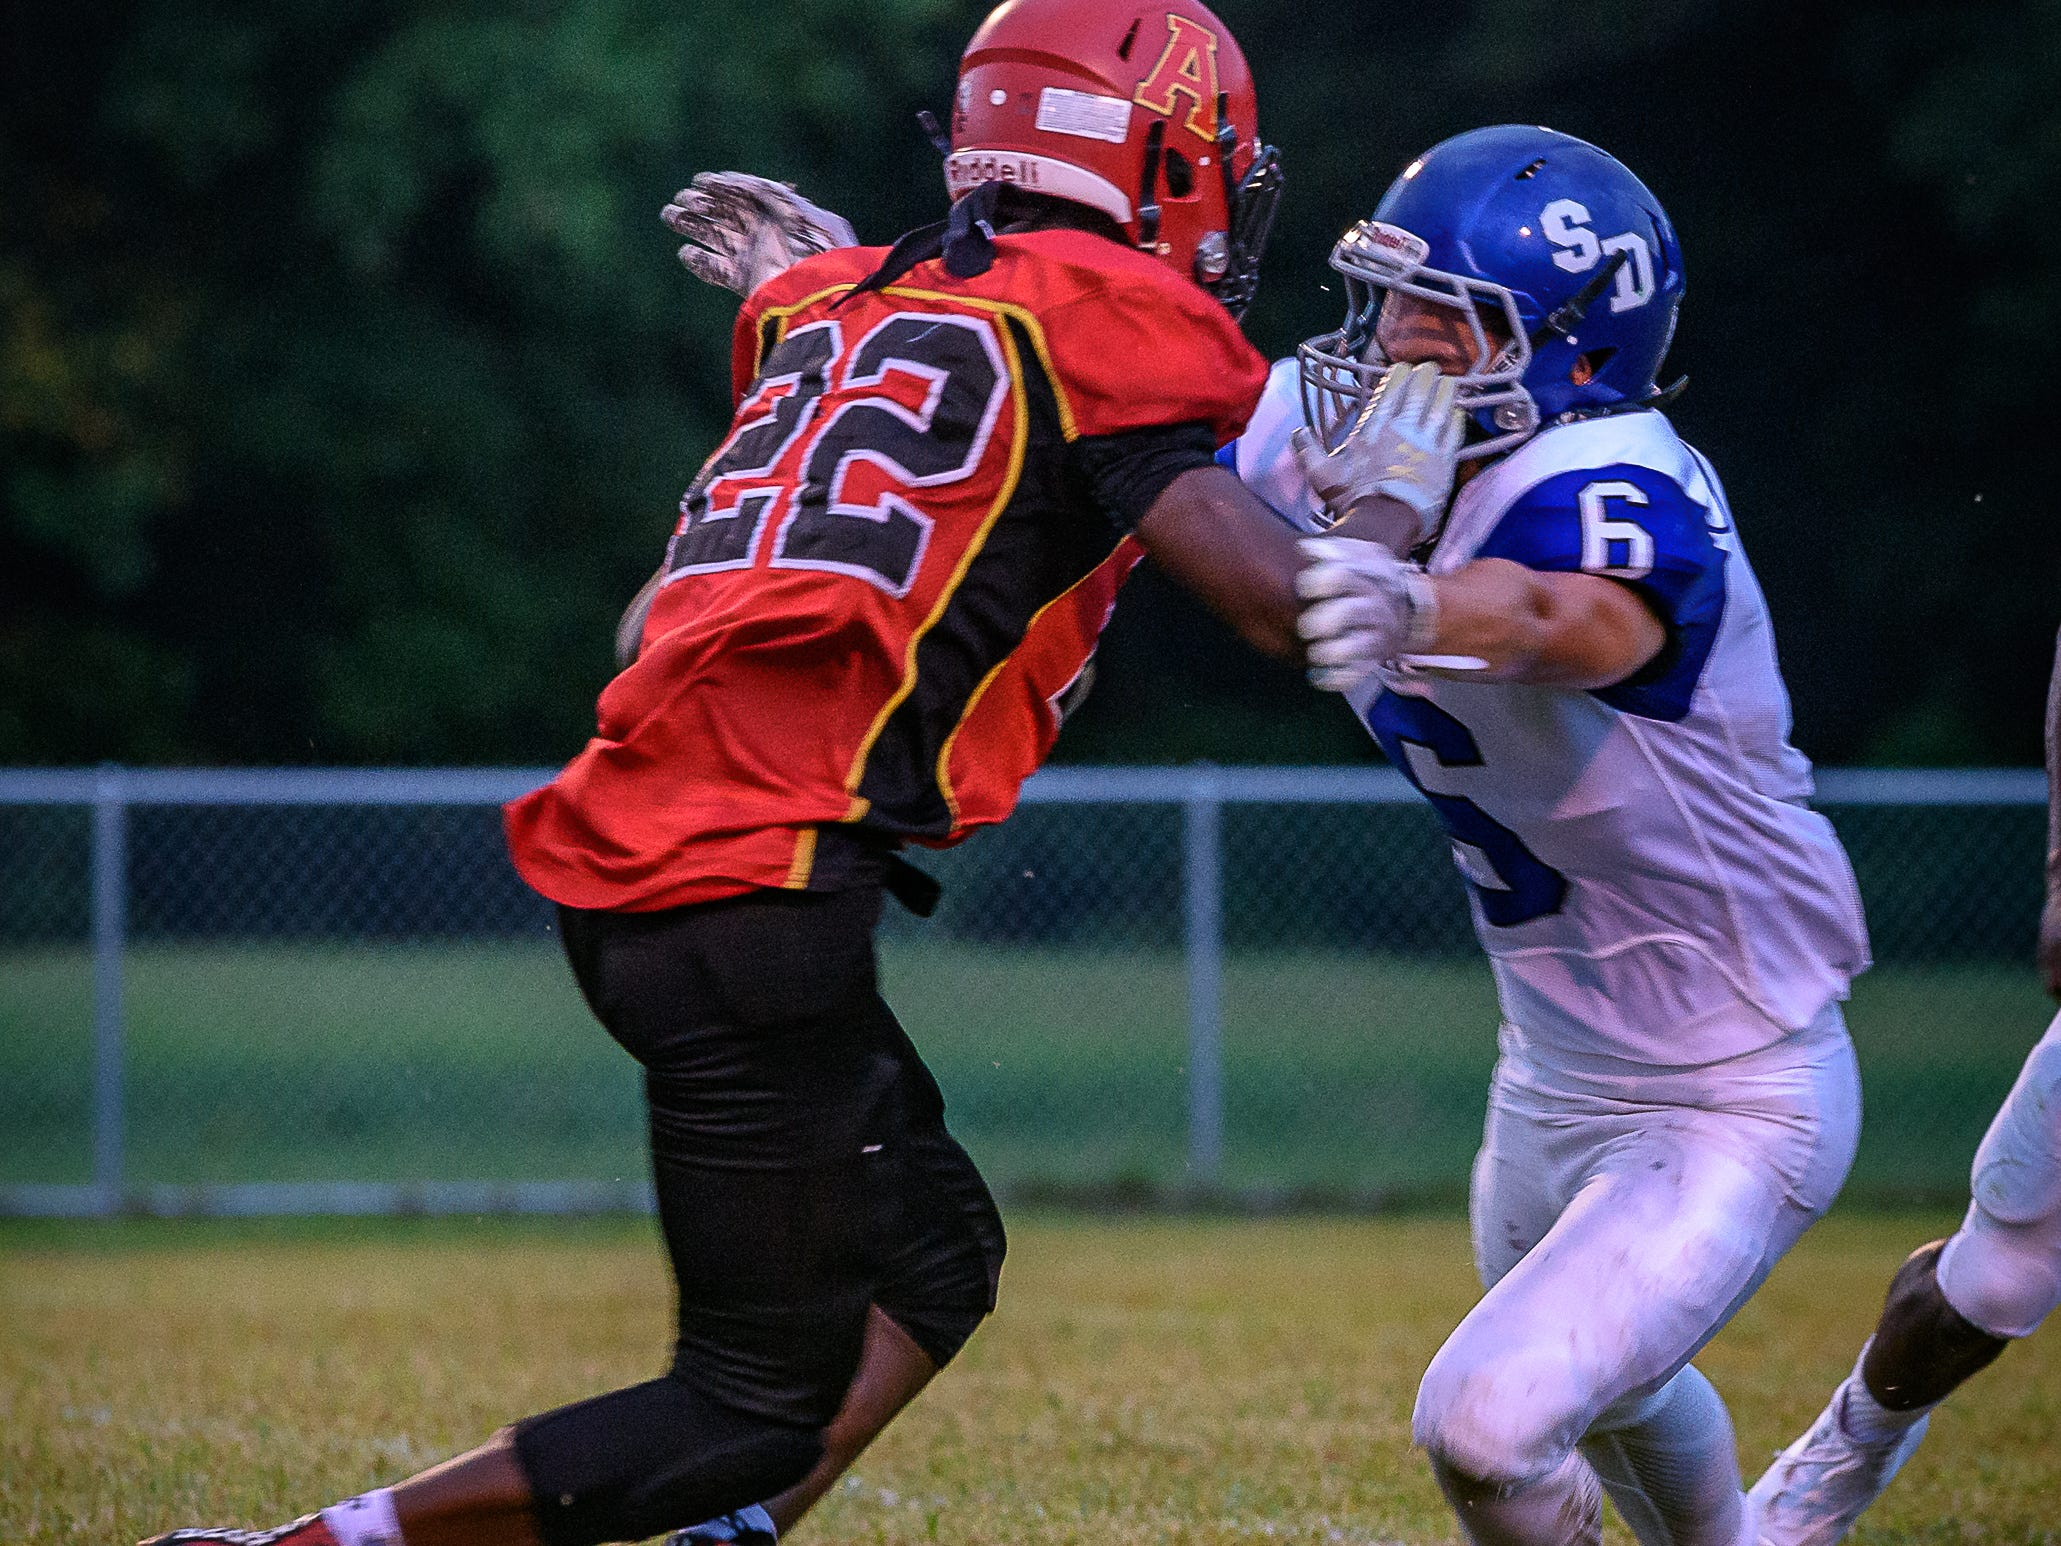 Arcadia's Jaden Hope, No. 22, tries to move the ball past Decatur's Cameron Bradshaw.